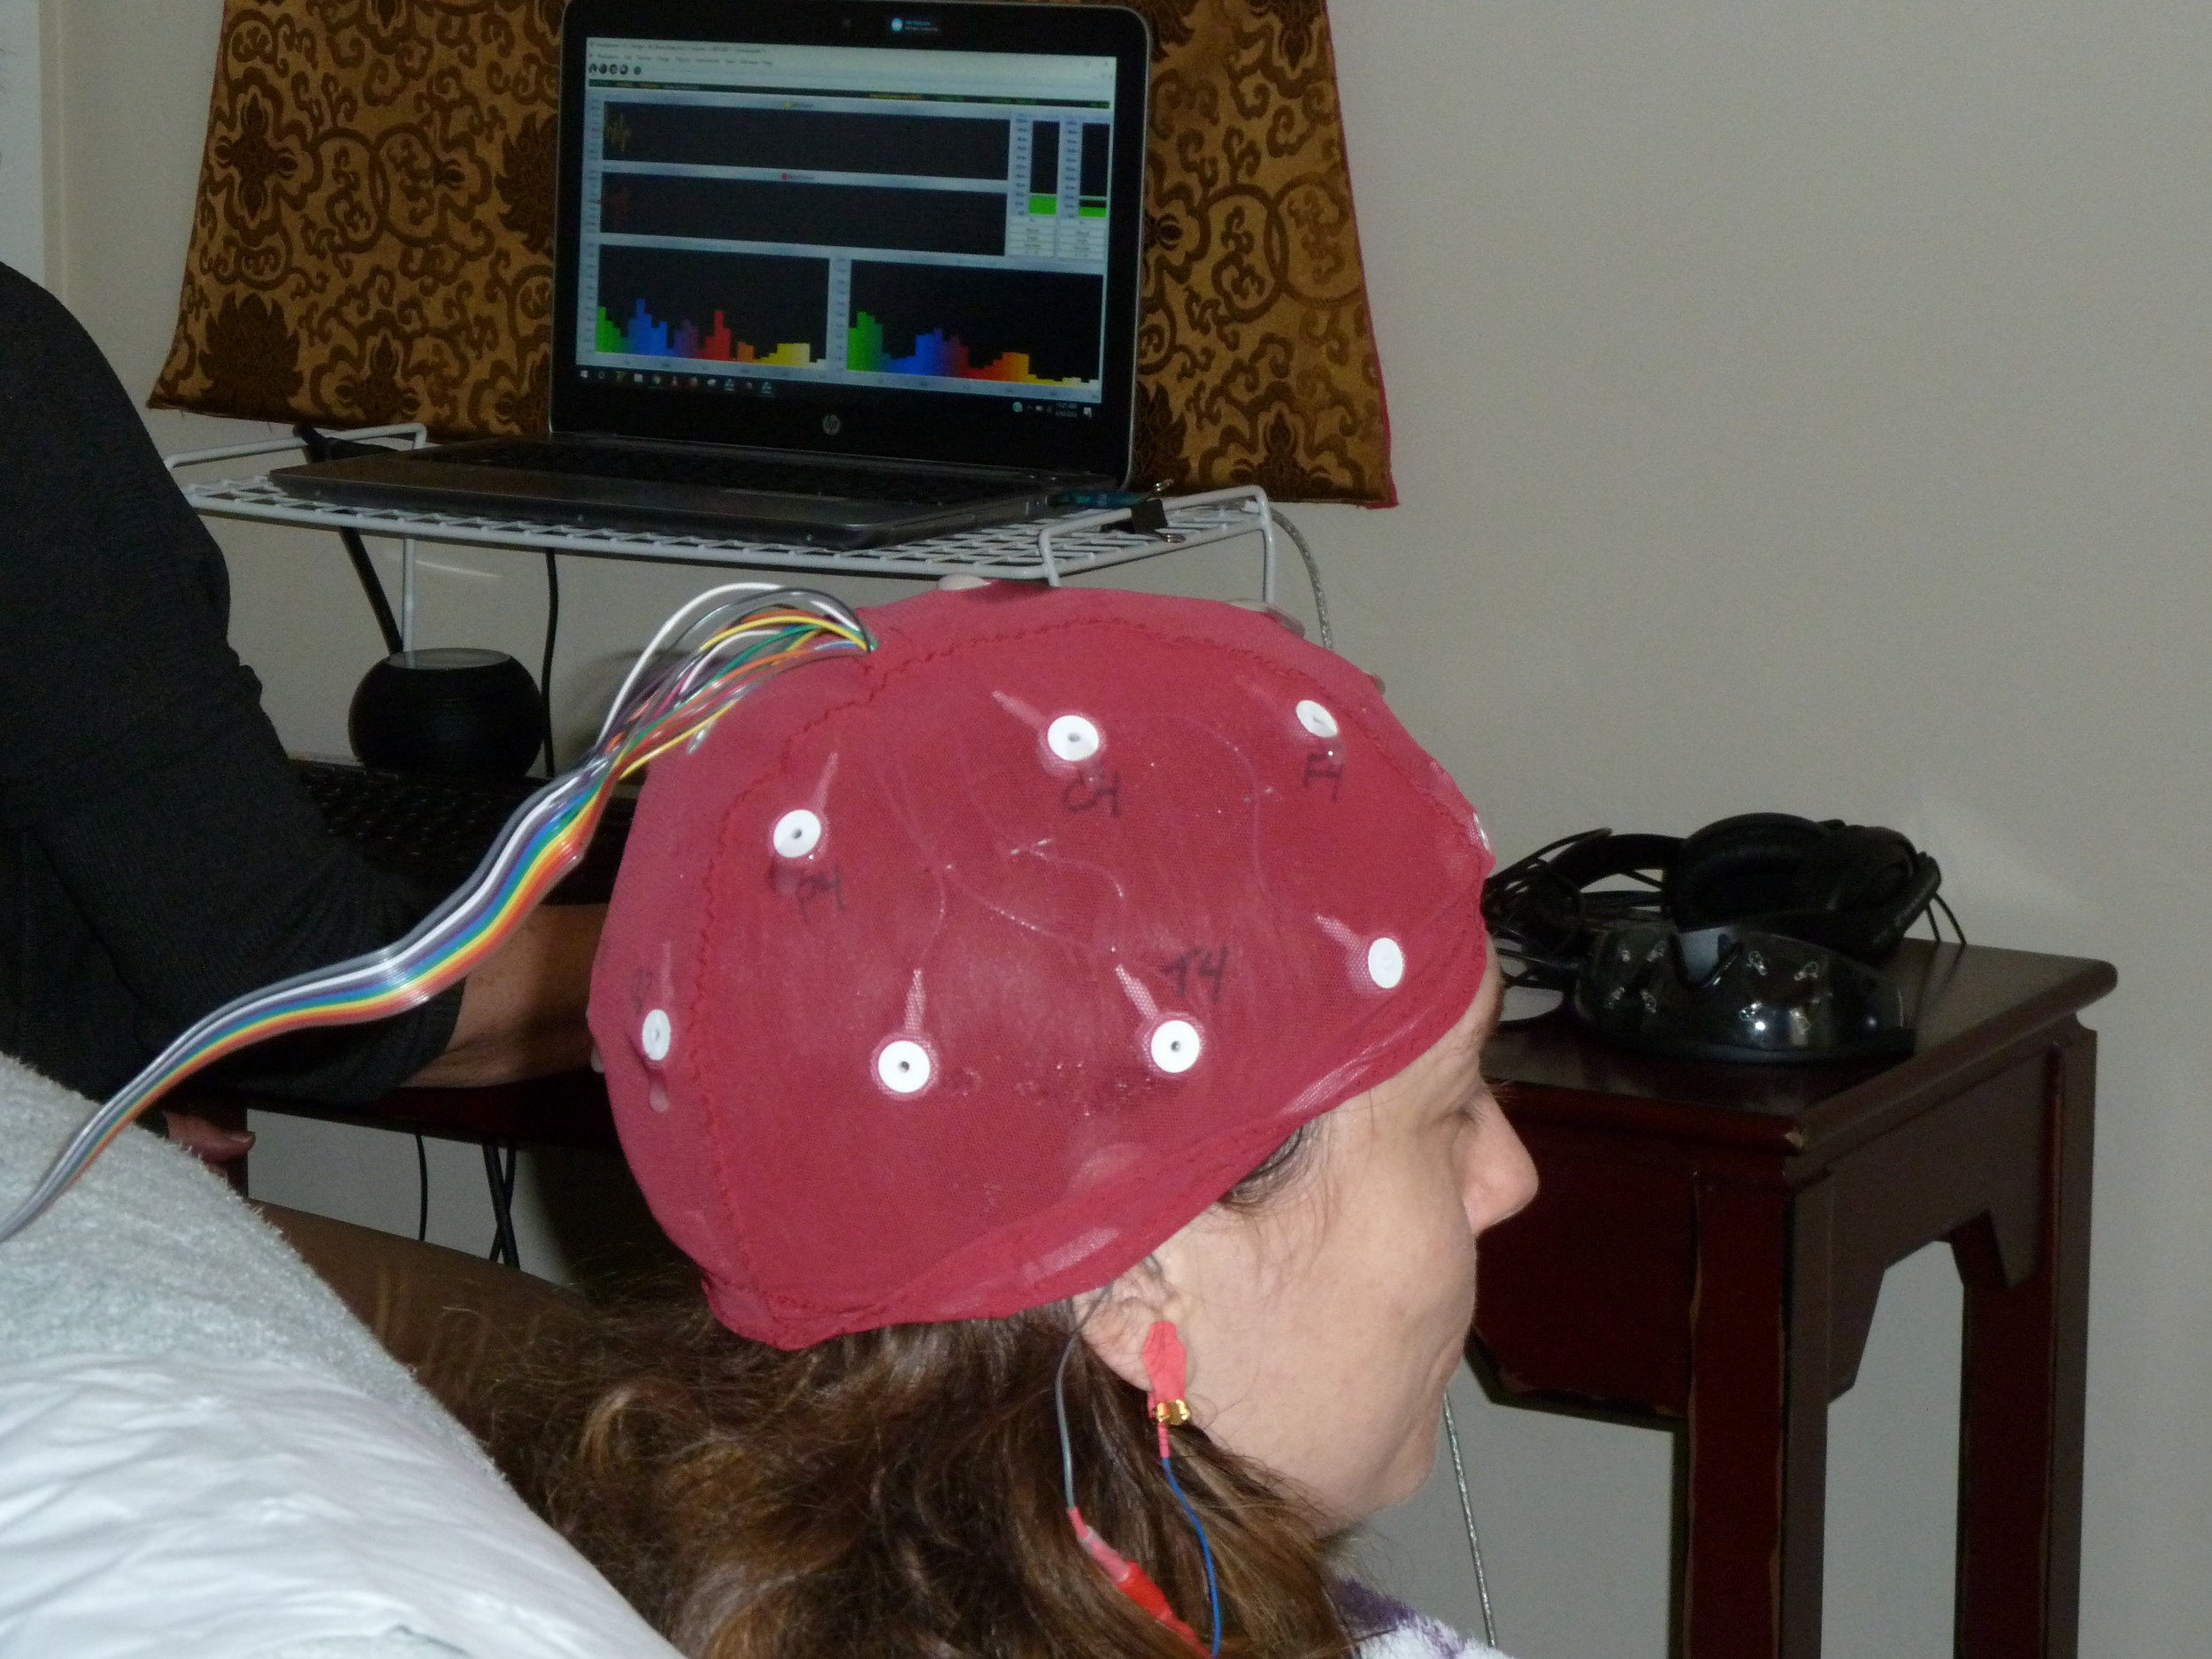 Brain Mapping - On the left our Client is wearing a cap with electrodes for the brain mapping process.